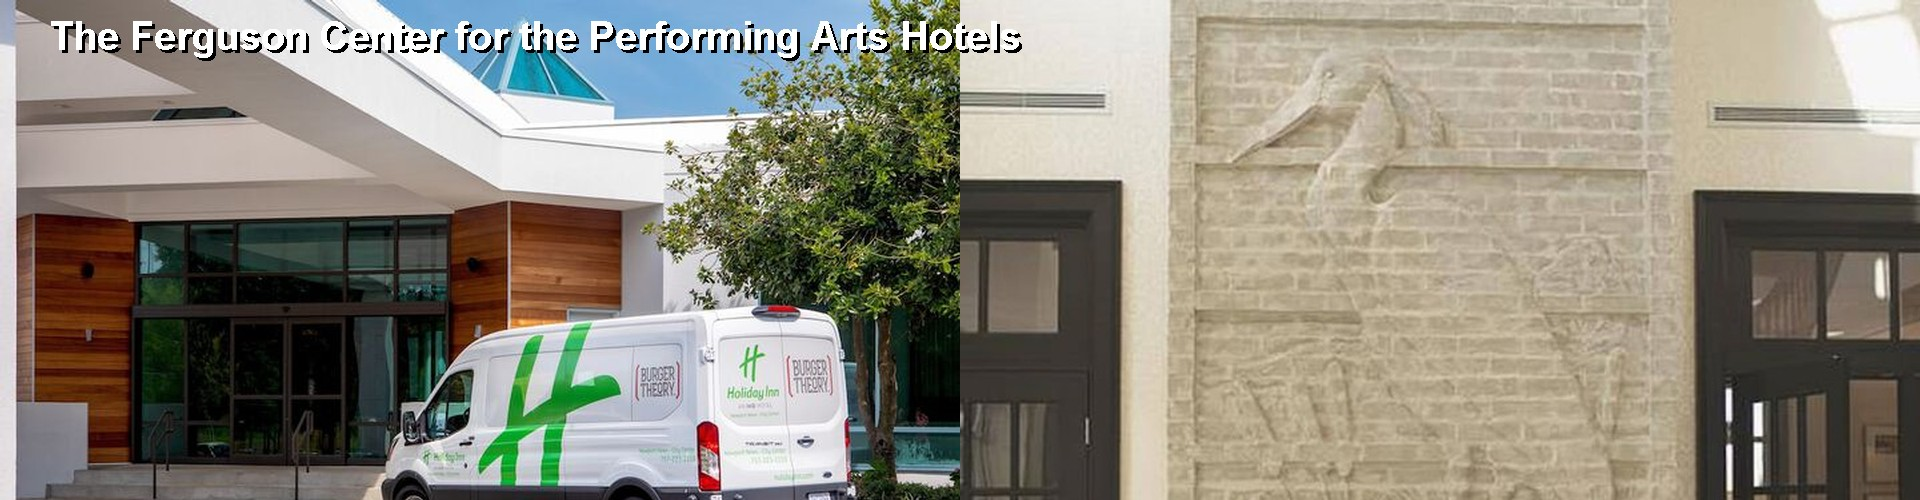 2 Best Hotels near The Ferguson Center for the Performing Arts